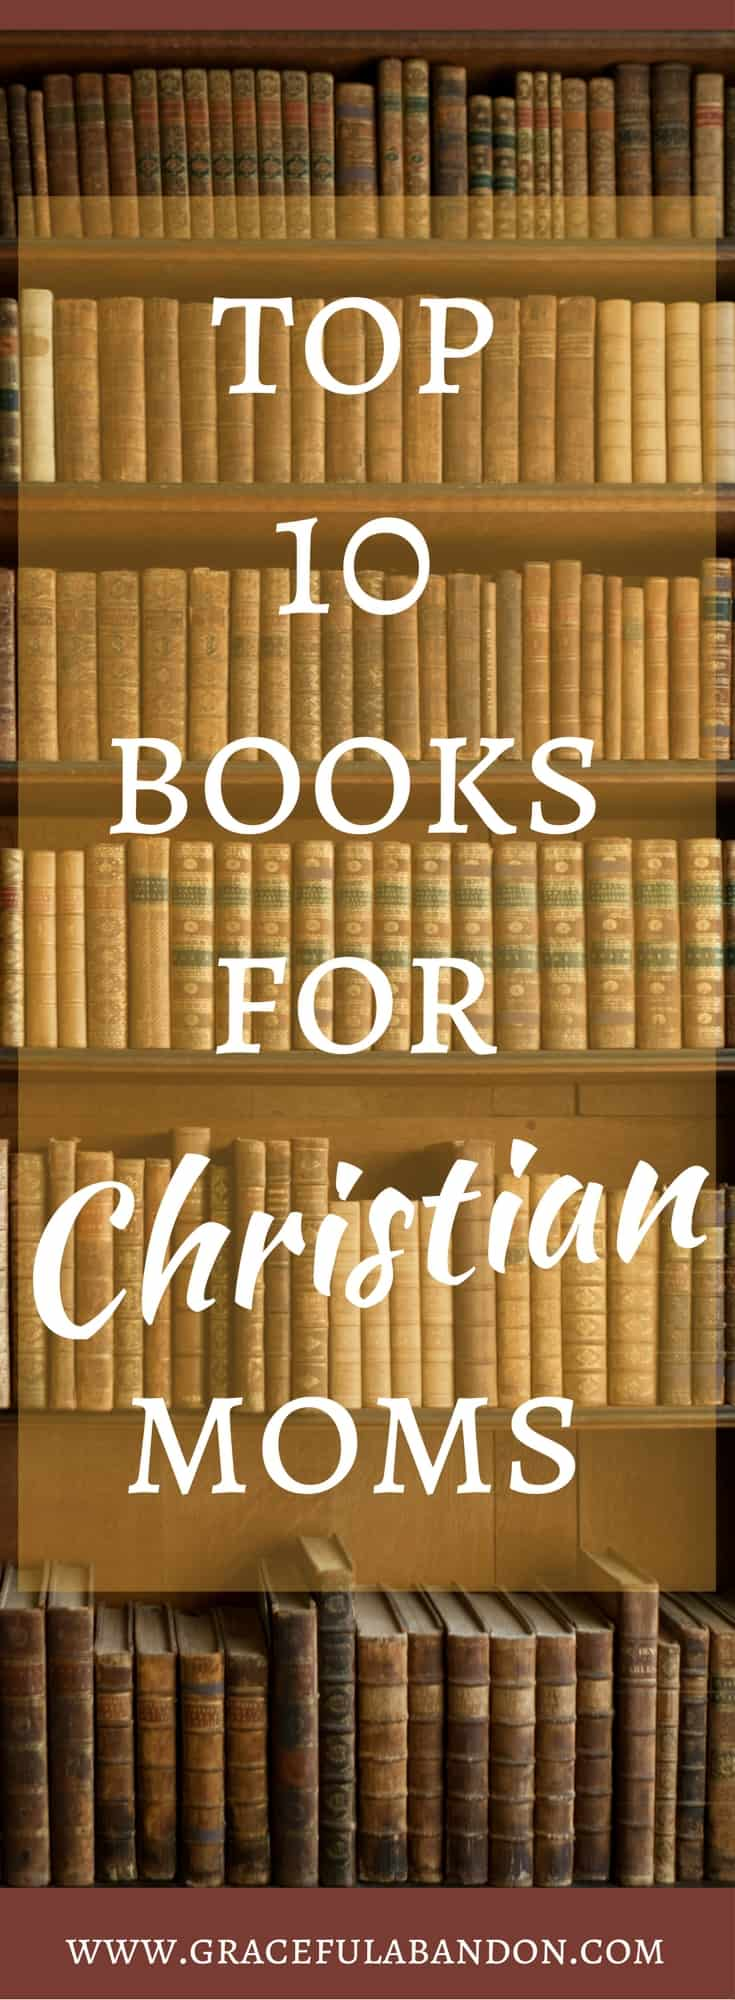 Here's a list of ten amazing books for Christian moms to read. These would be awesome gifts for any mothers in your life!